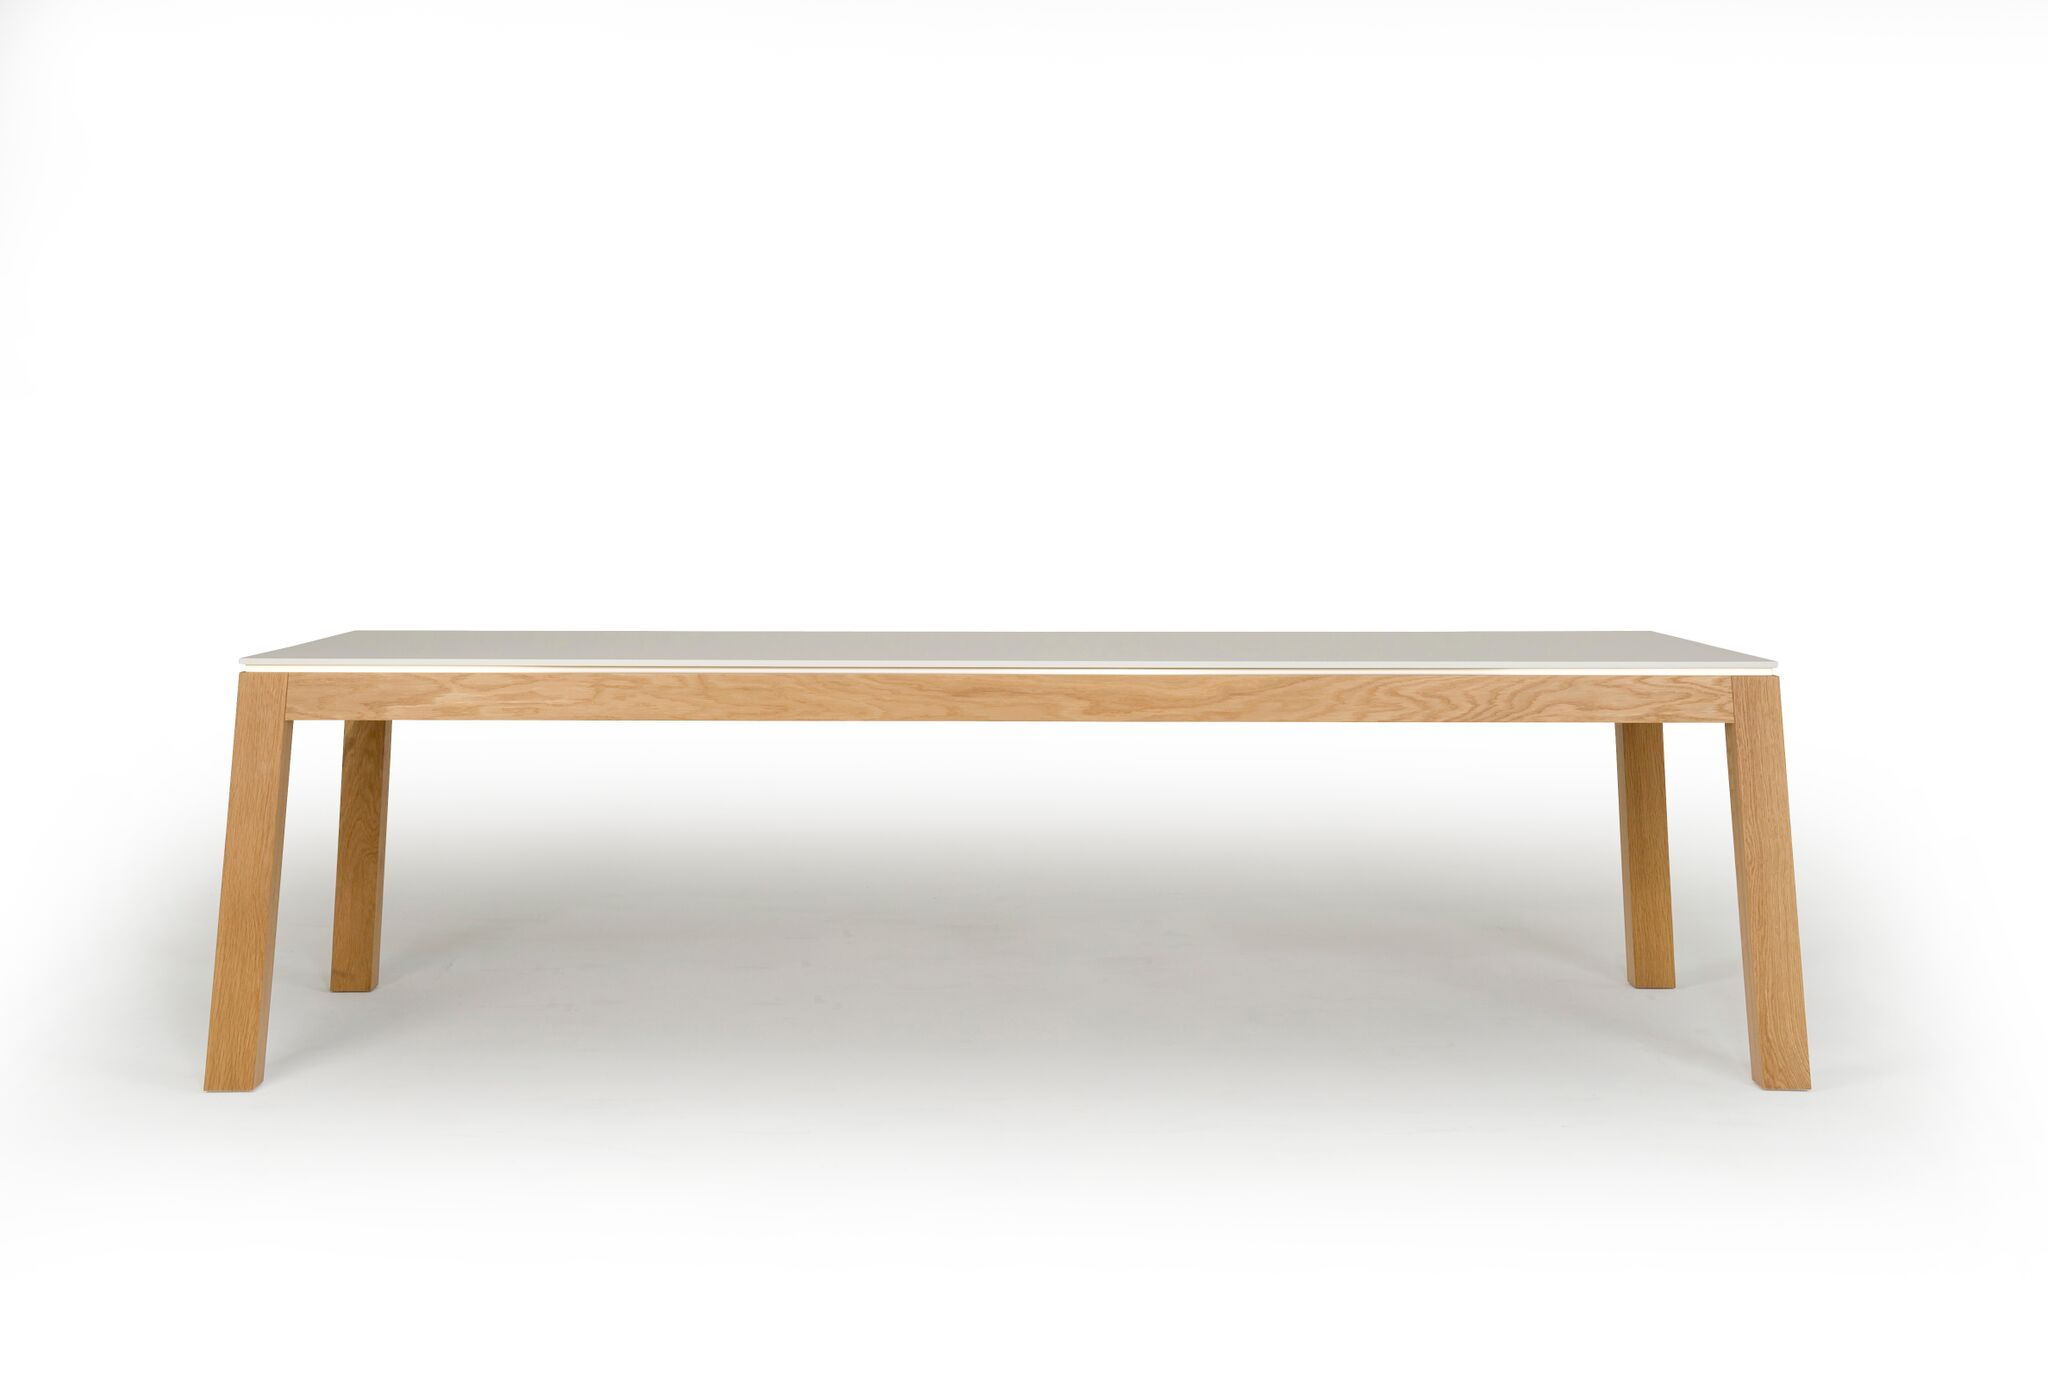 Gallery Of The Mila Table By Fraco Crea Local Australian Furniture Design Melbourne, Vic Image 12